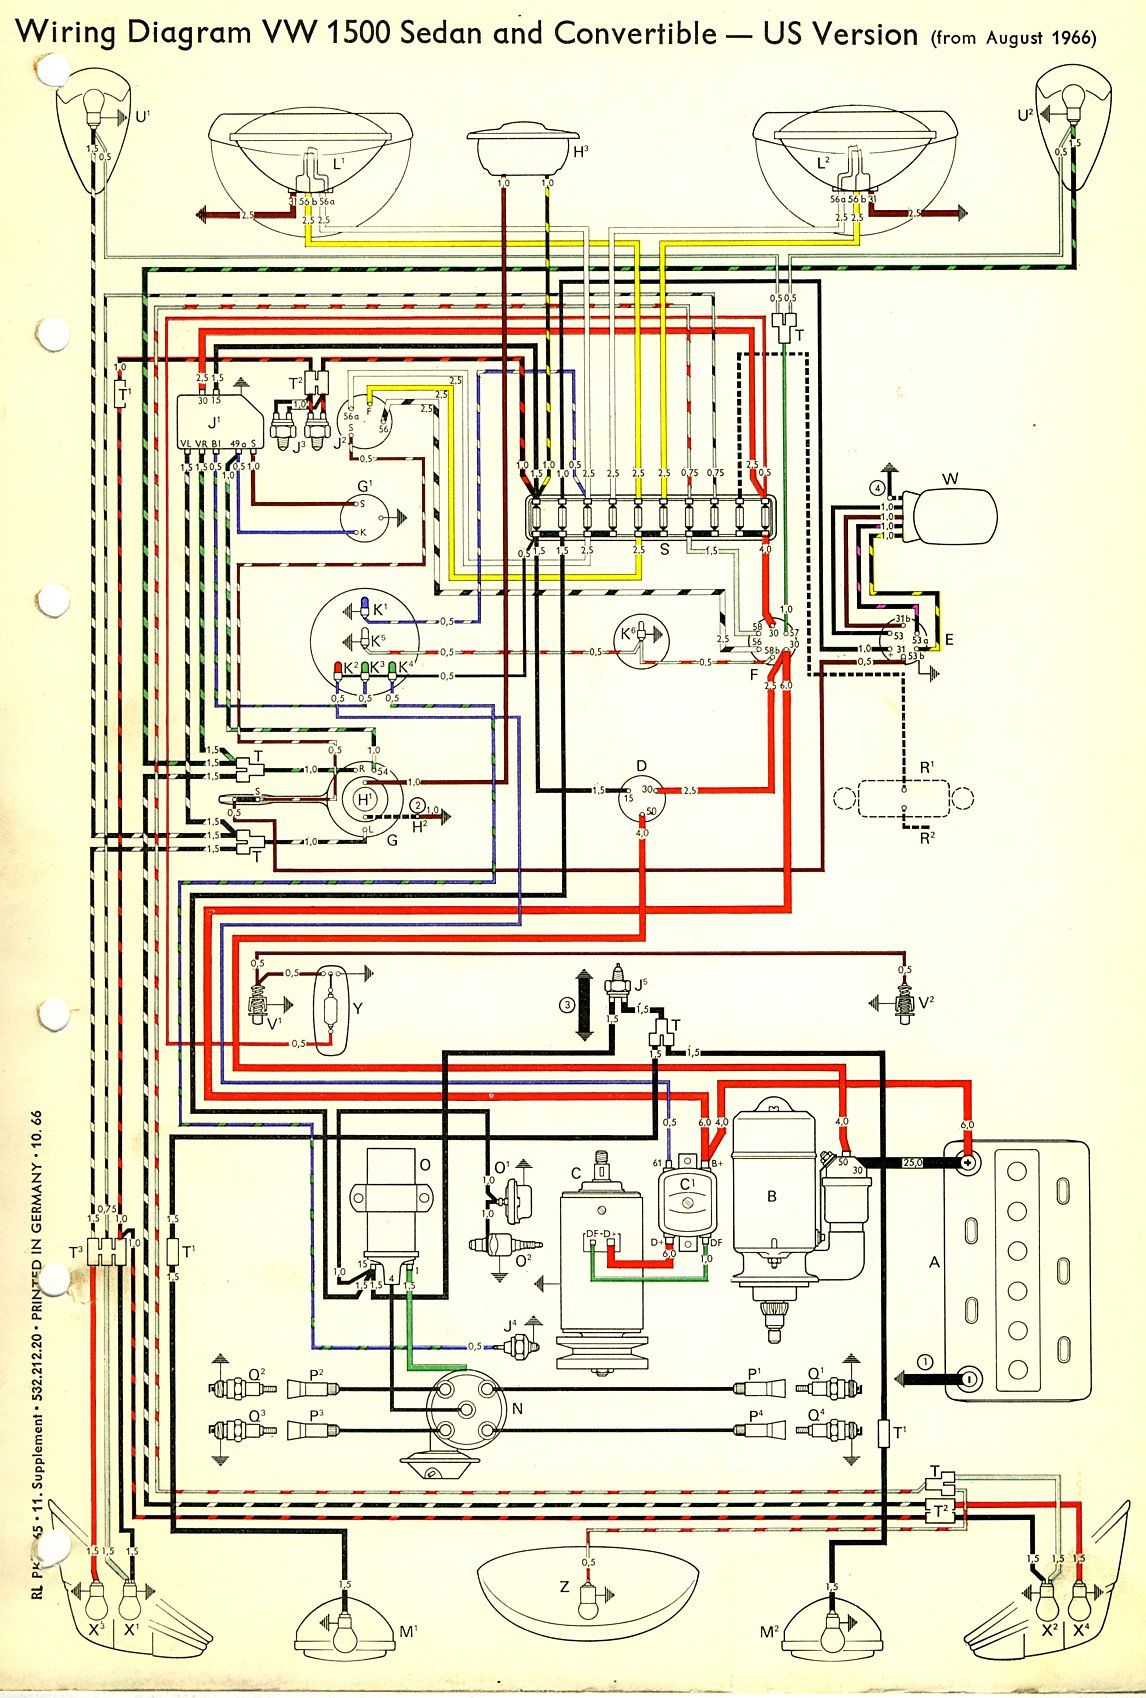 1adf990c0efb617c789fdd21338448b0 1967 beetle wiring diagram (usa) thegoldenbug com best 1967 vw vw bug wiring diagram at n-0.co